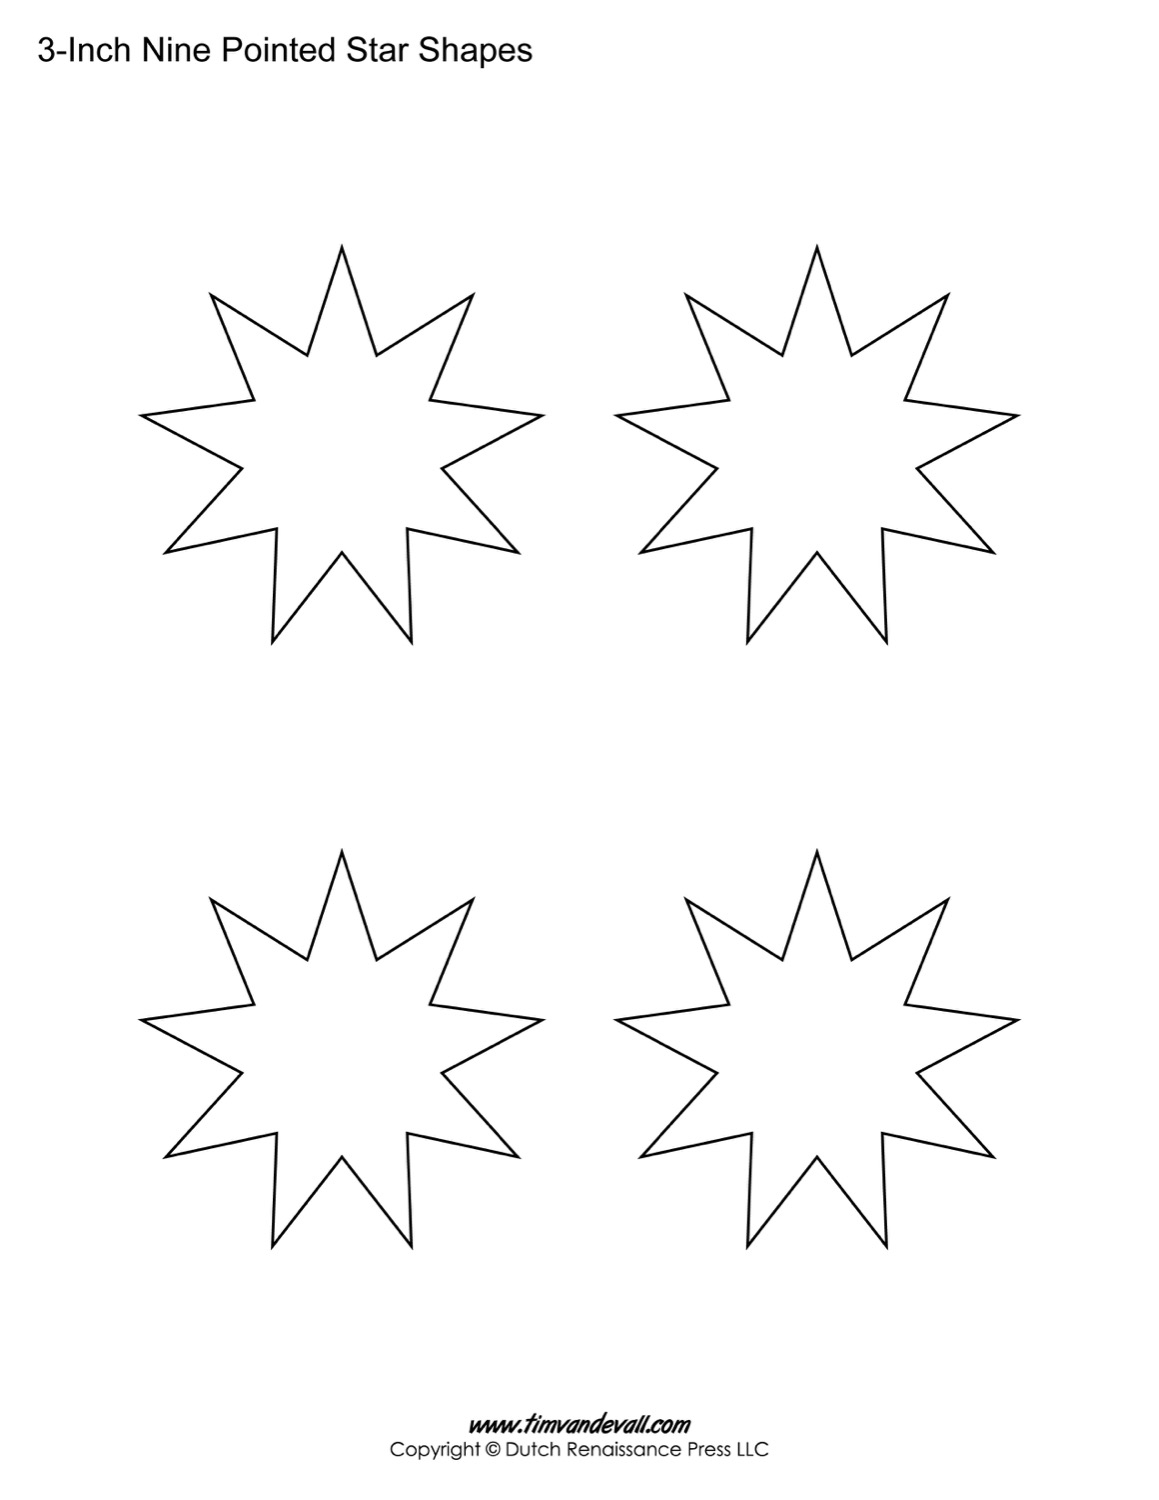 9 pointed stars